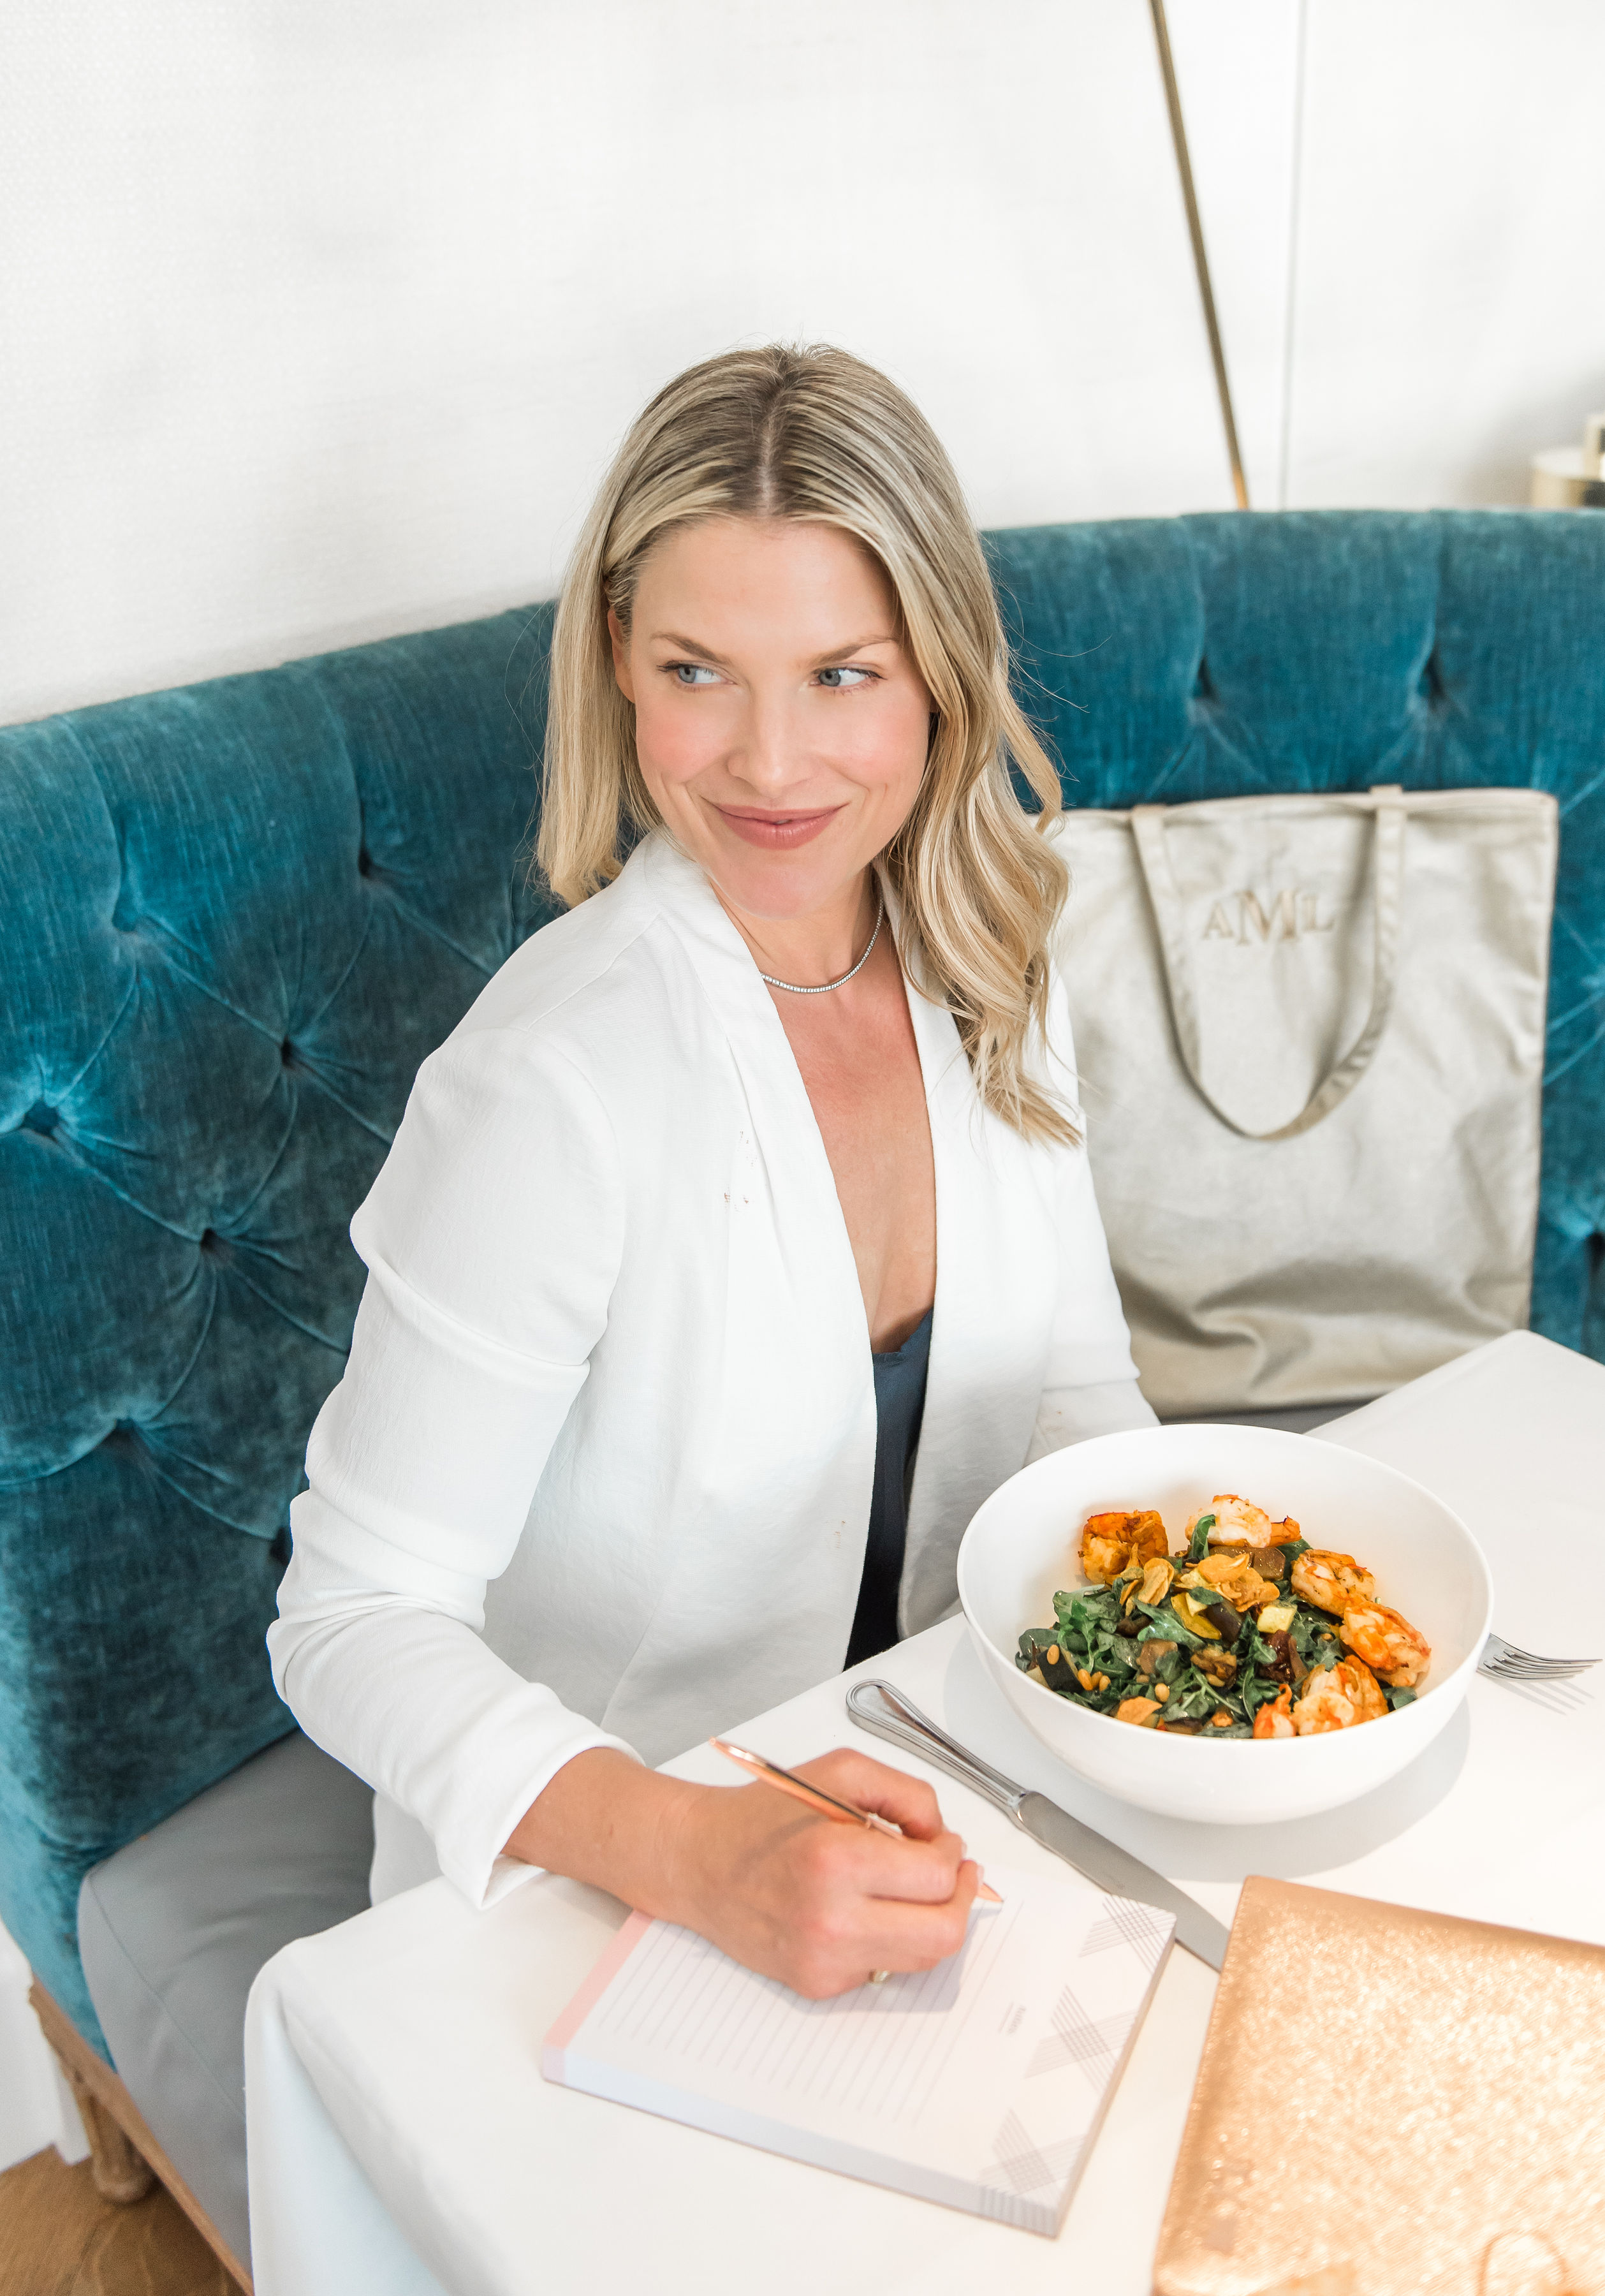 Ali Larter x RM Motivate Collection